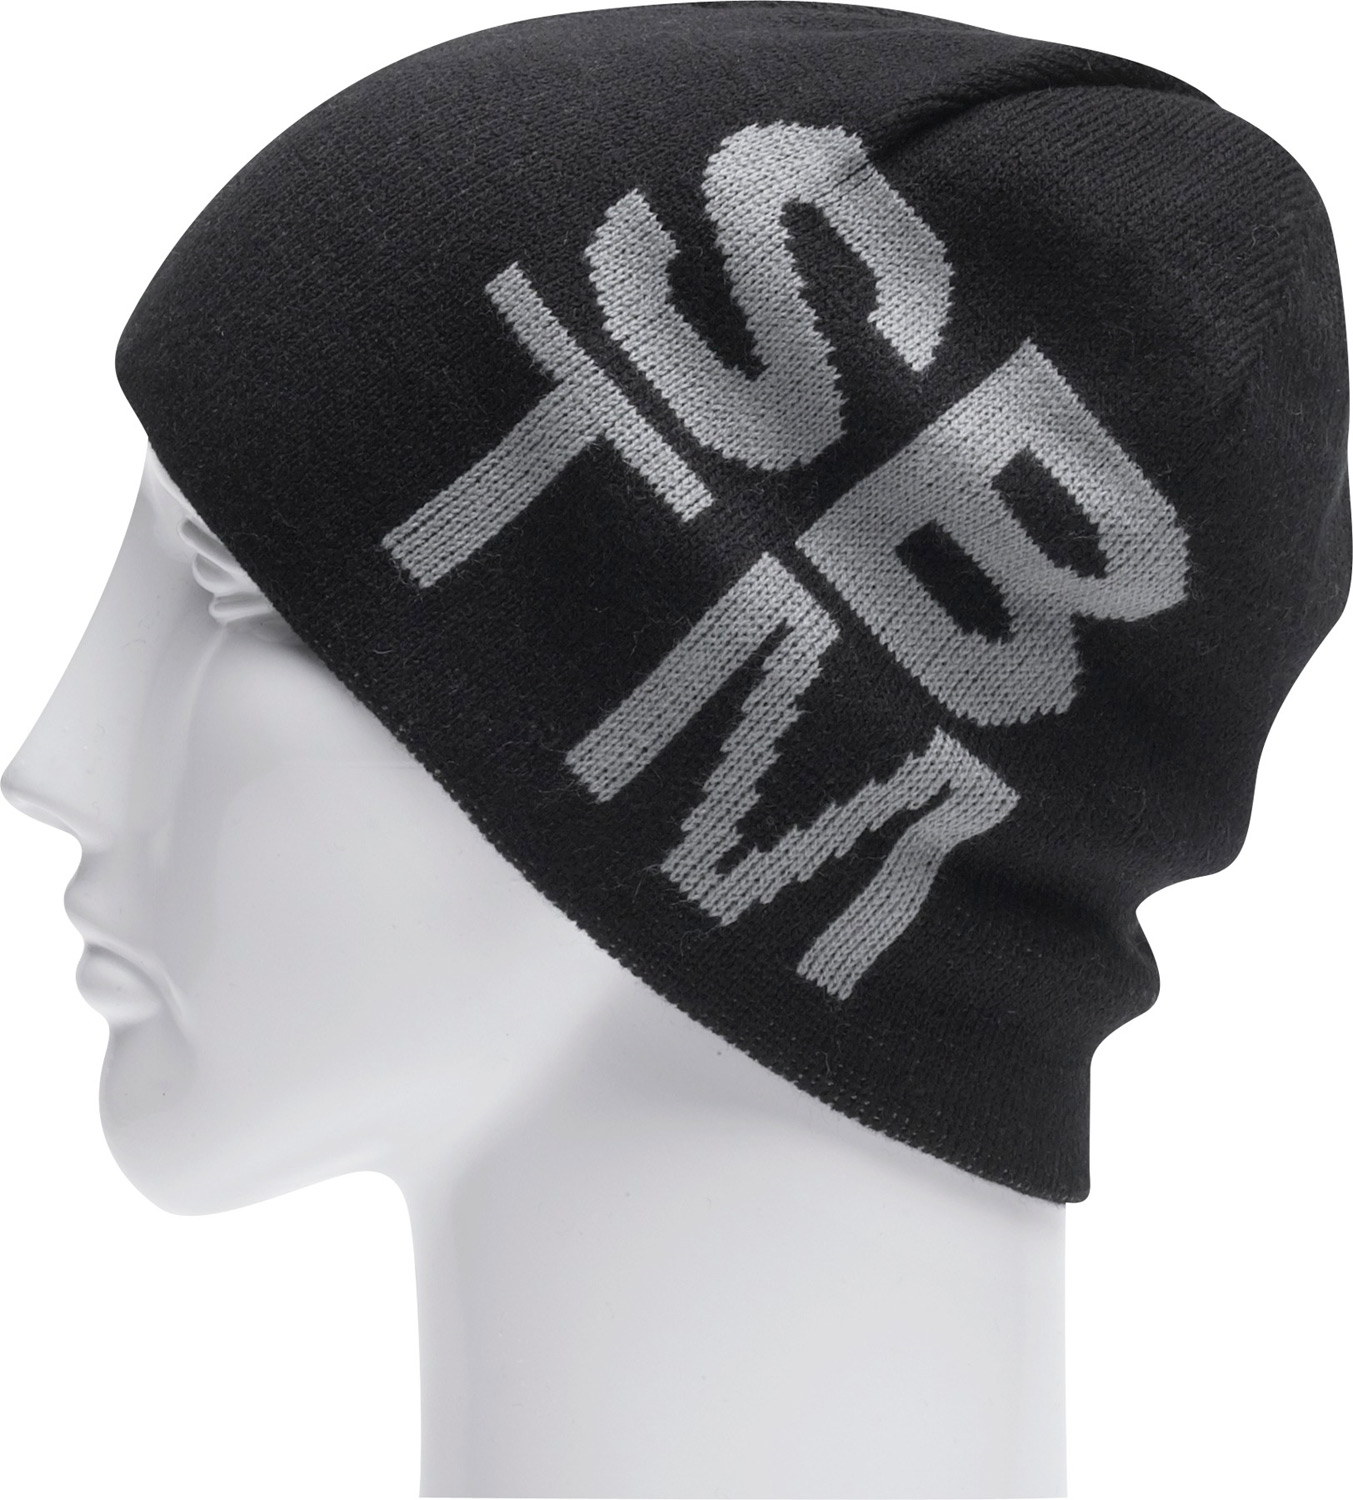 "Key Features of the Special Blend Noble Beanie:  Machine knit  100% acrylic  8 1/2"" tall  Reversible jacquard  One size fits all - $12.95"